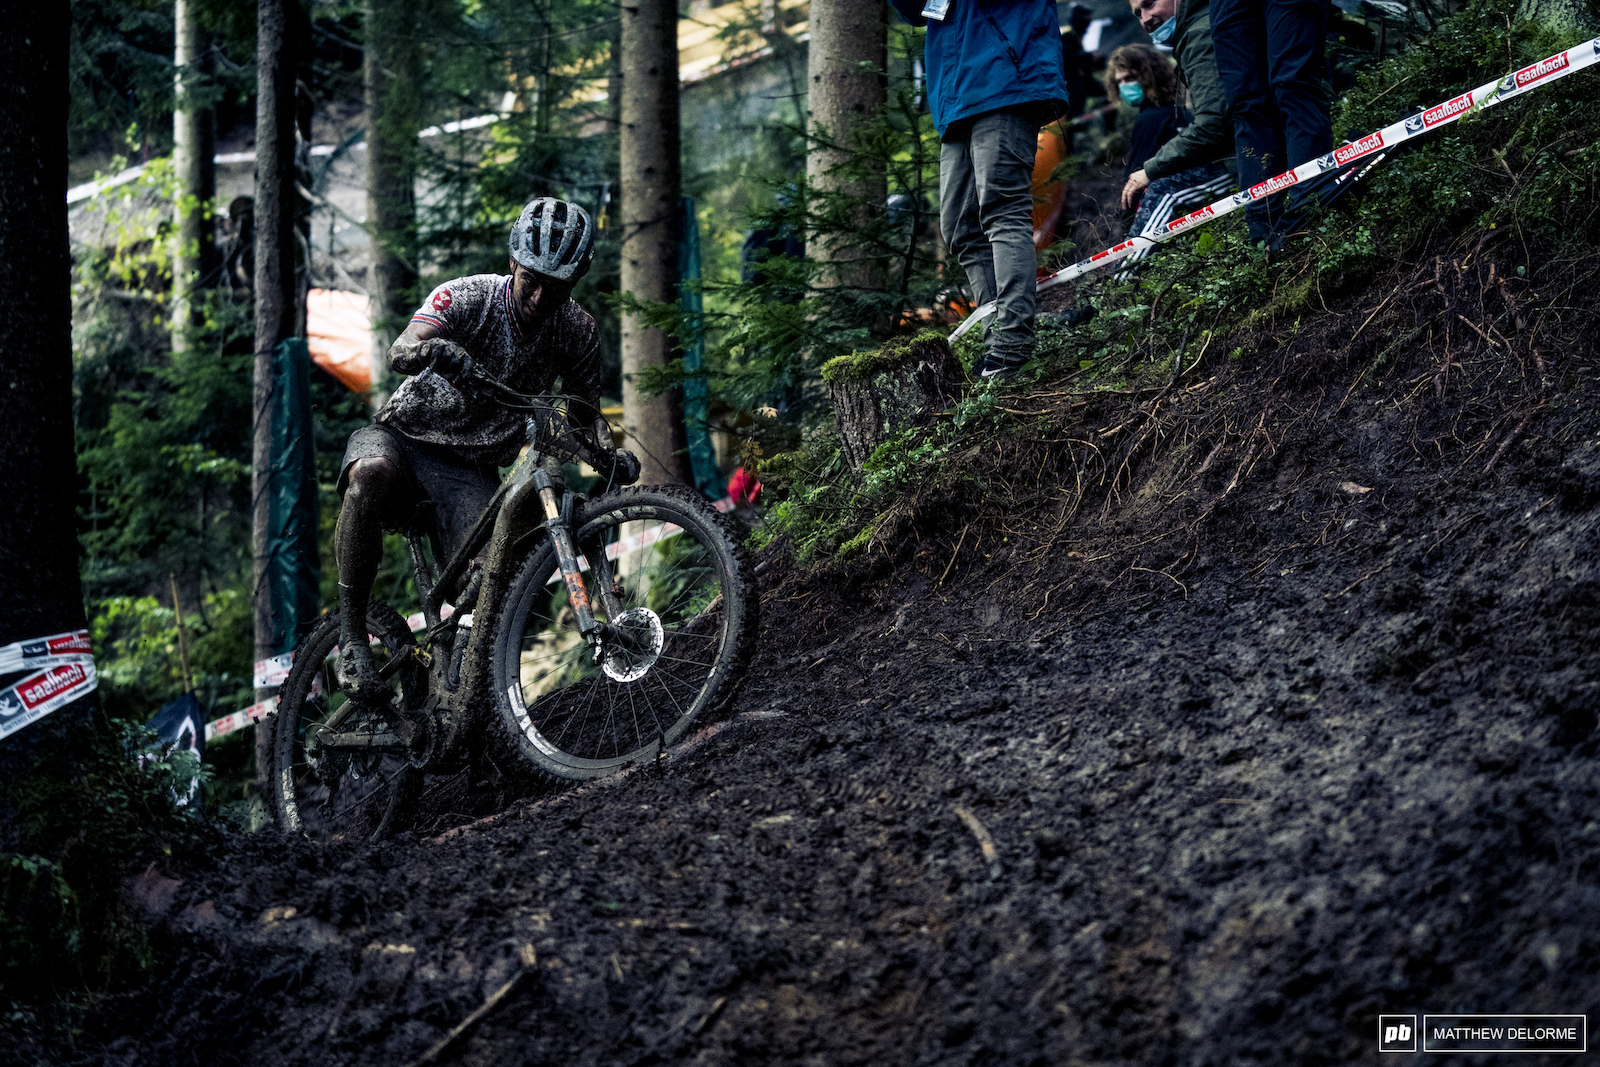 Kenta Gallagher doing what any fine Scottish lad does in the mud- rails ruts.